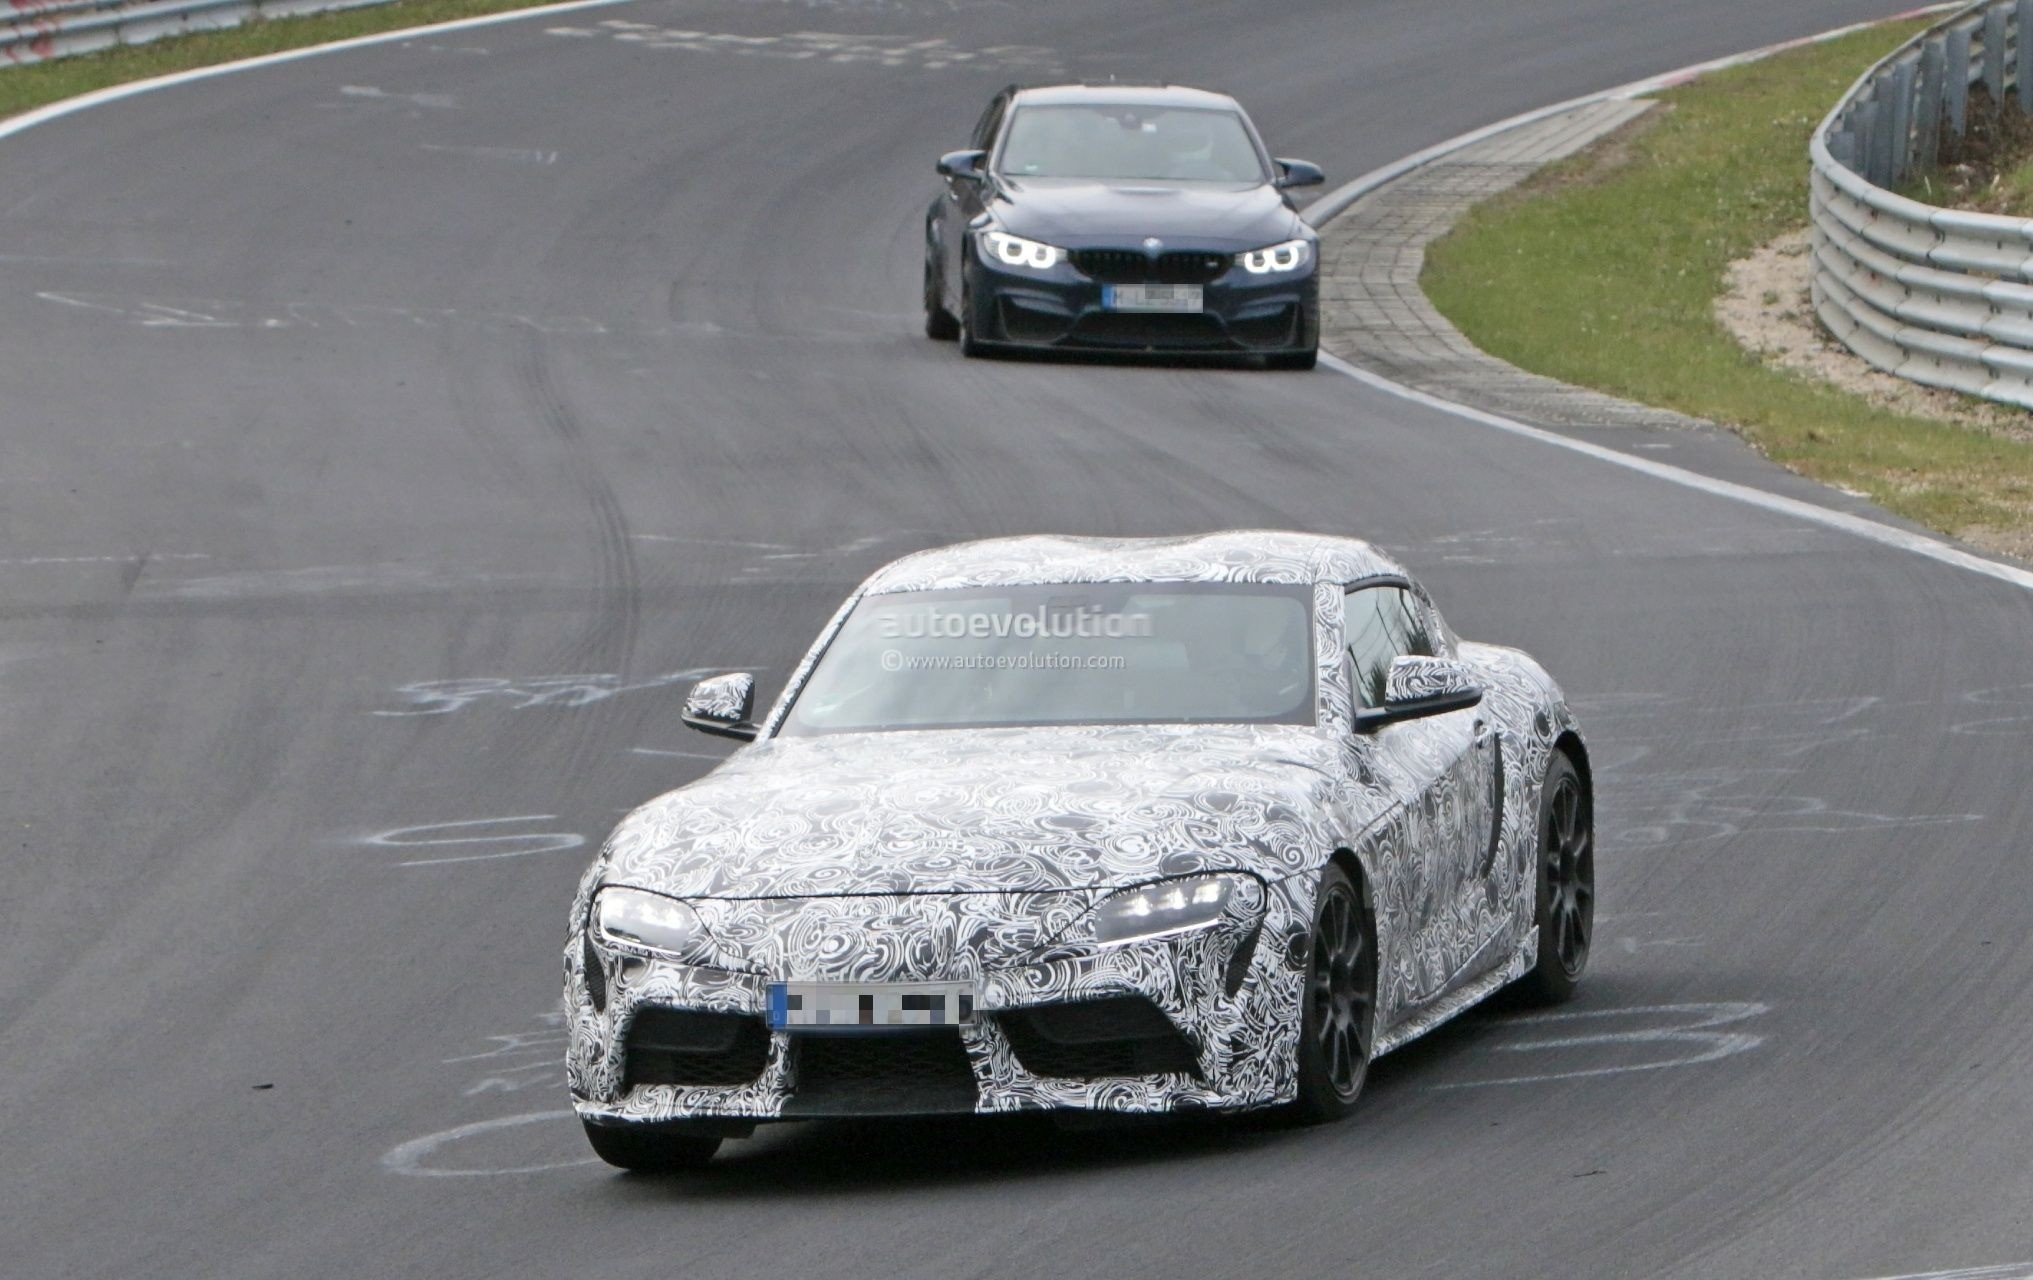 Spyshots 2019 Toyota Supra Interior Shown By Prototype